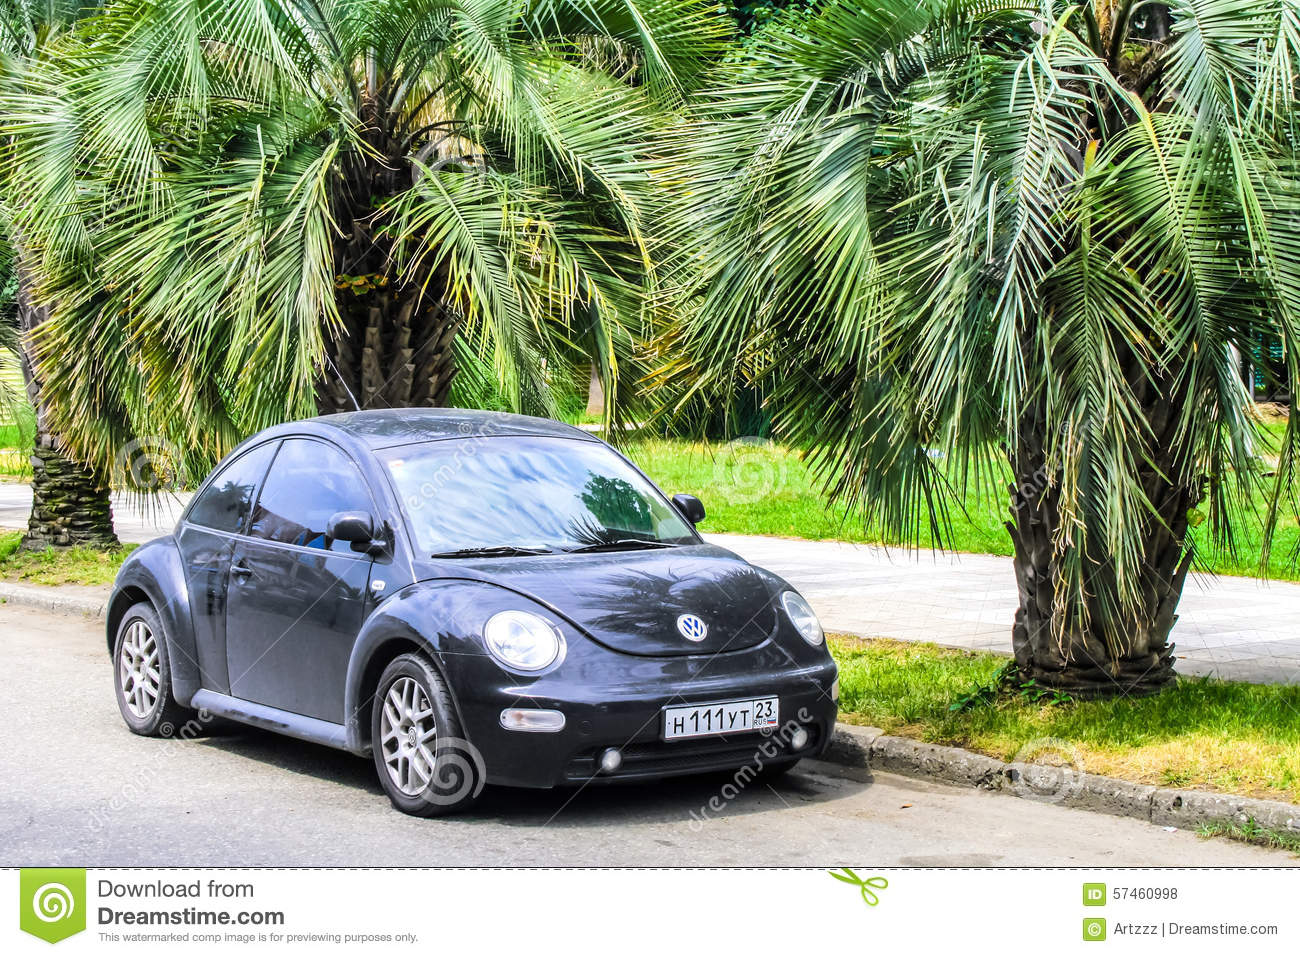 vw volkswagen beetle elegant car prked in city editorial photo 86122259. Black Bedroom Furniture Sets. Home Design Ideas